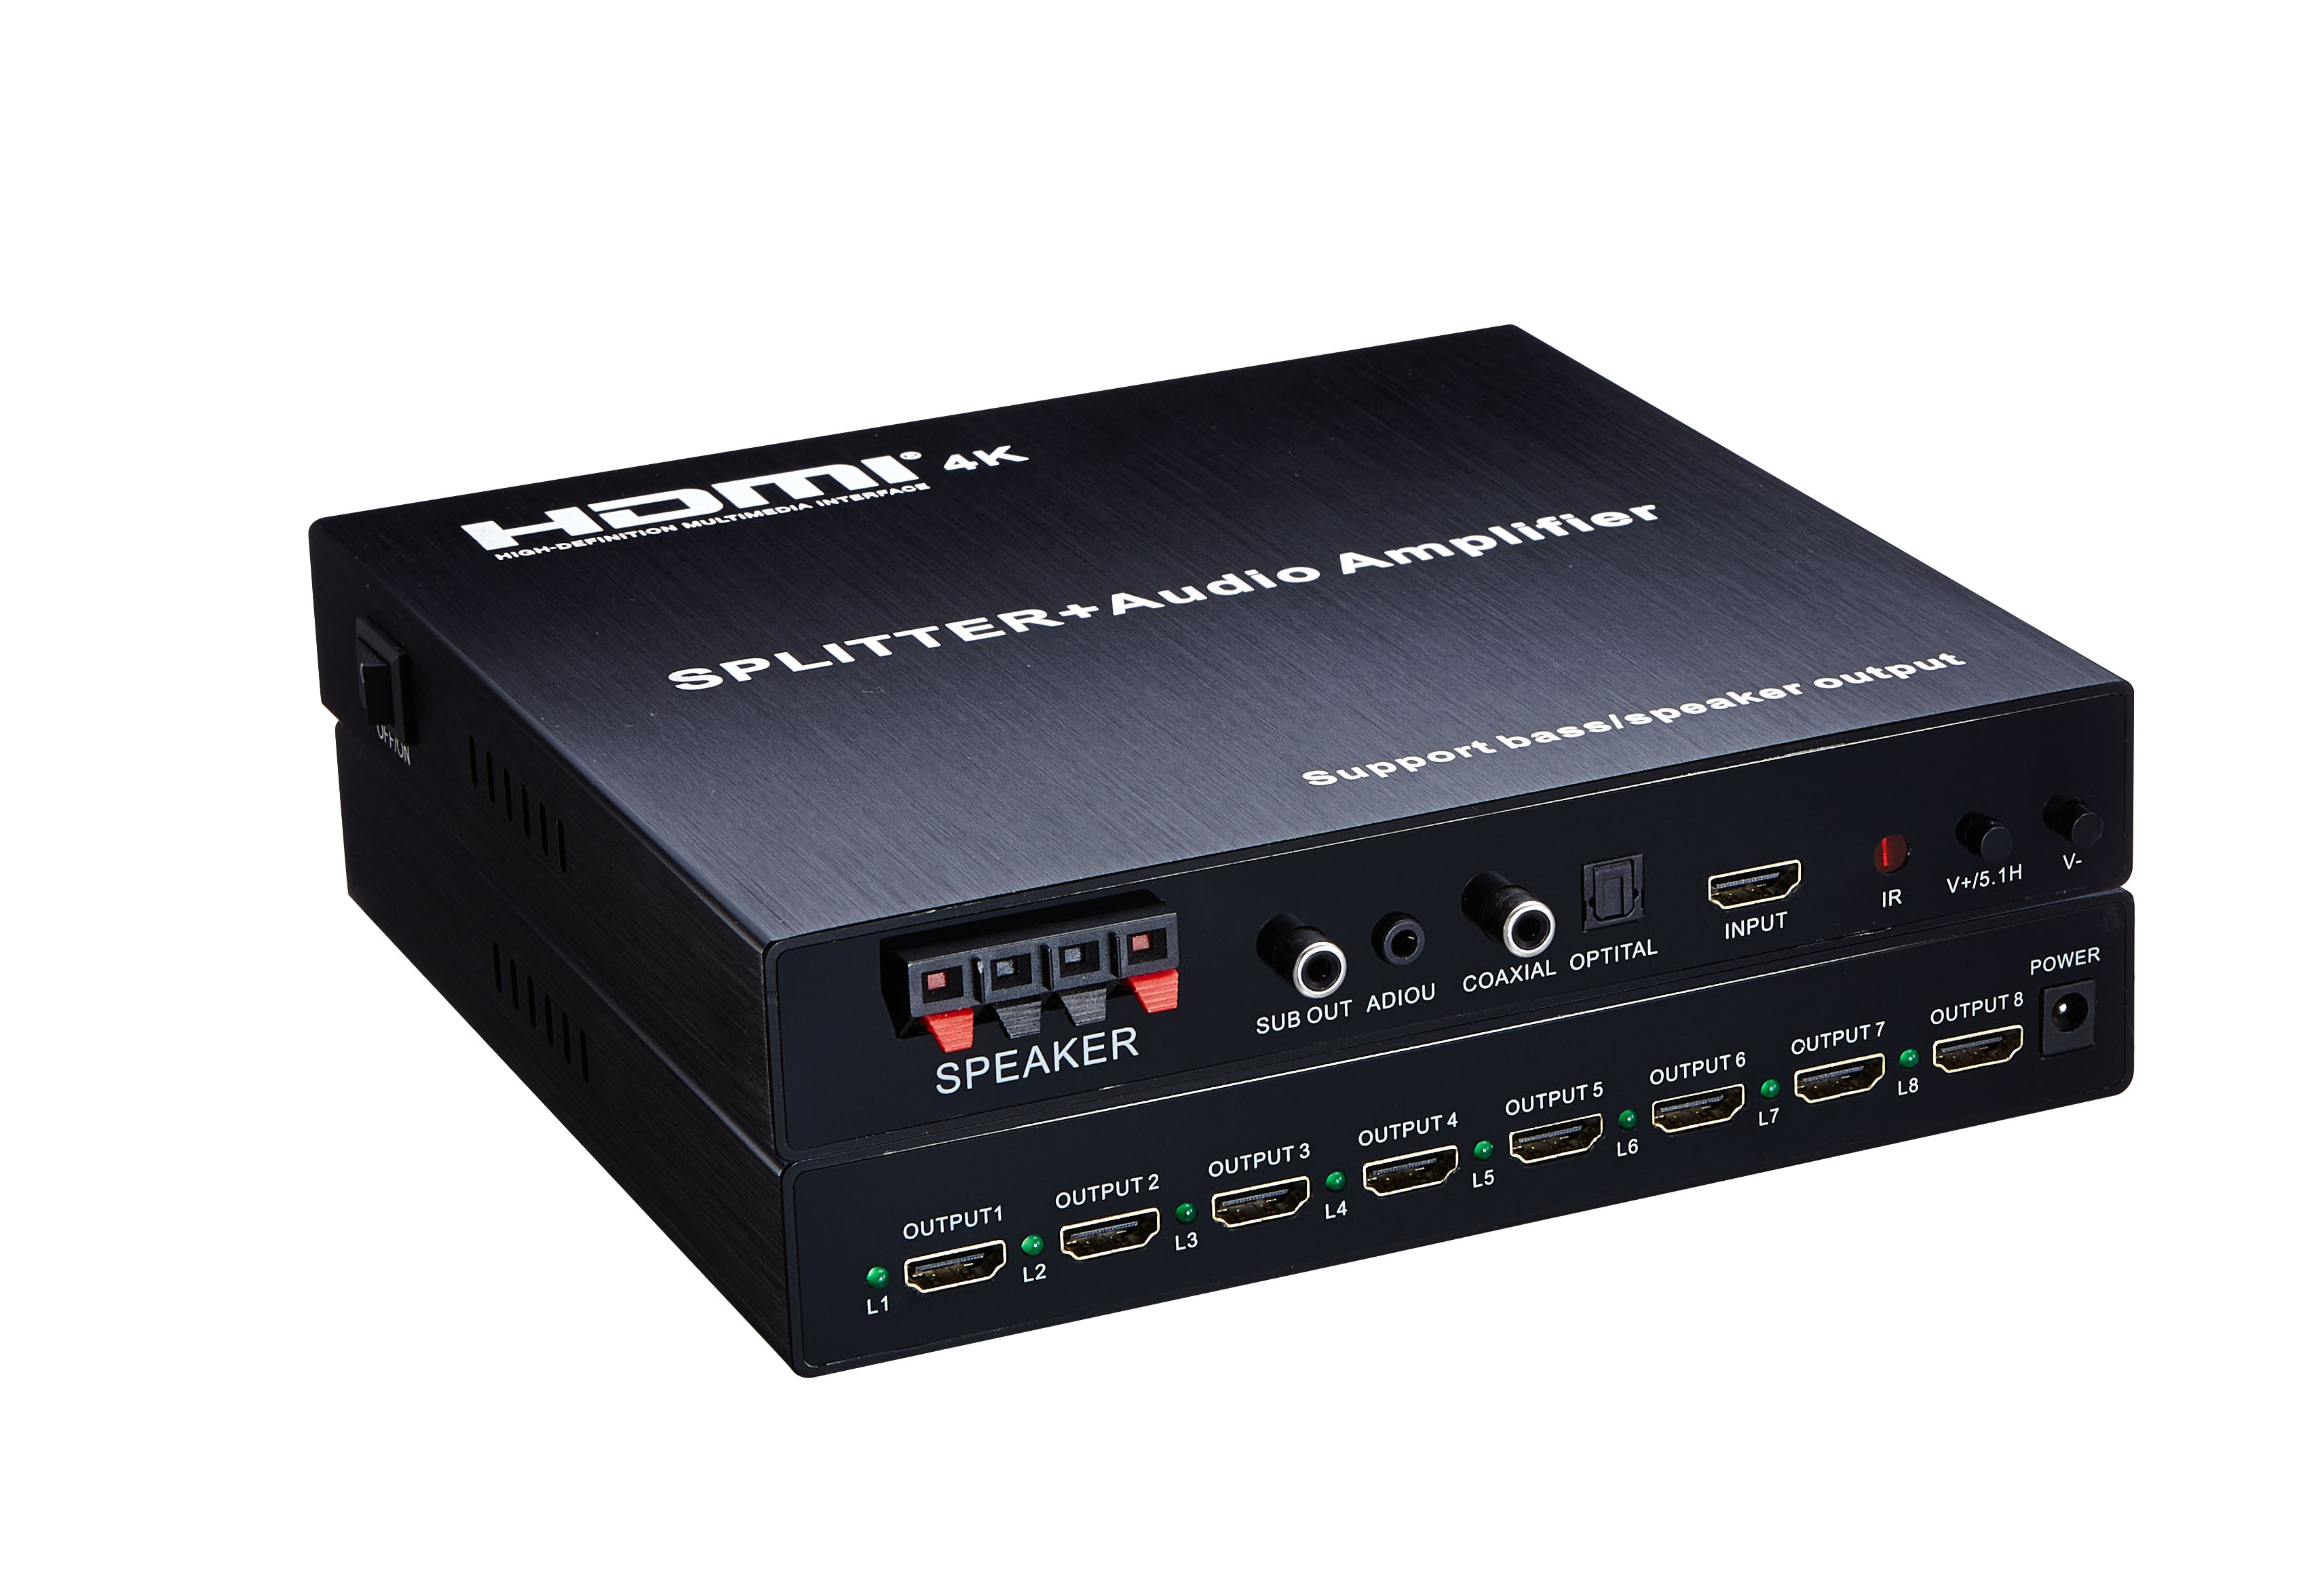 4K HDMI Splitter 1X8 with Amplifier